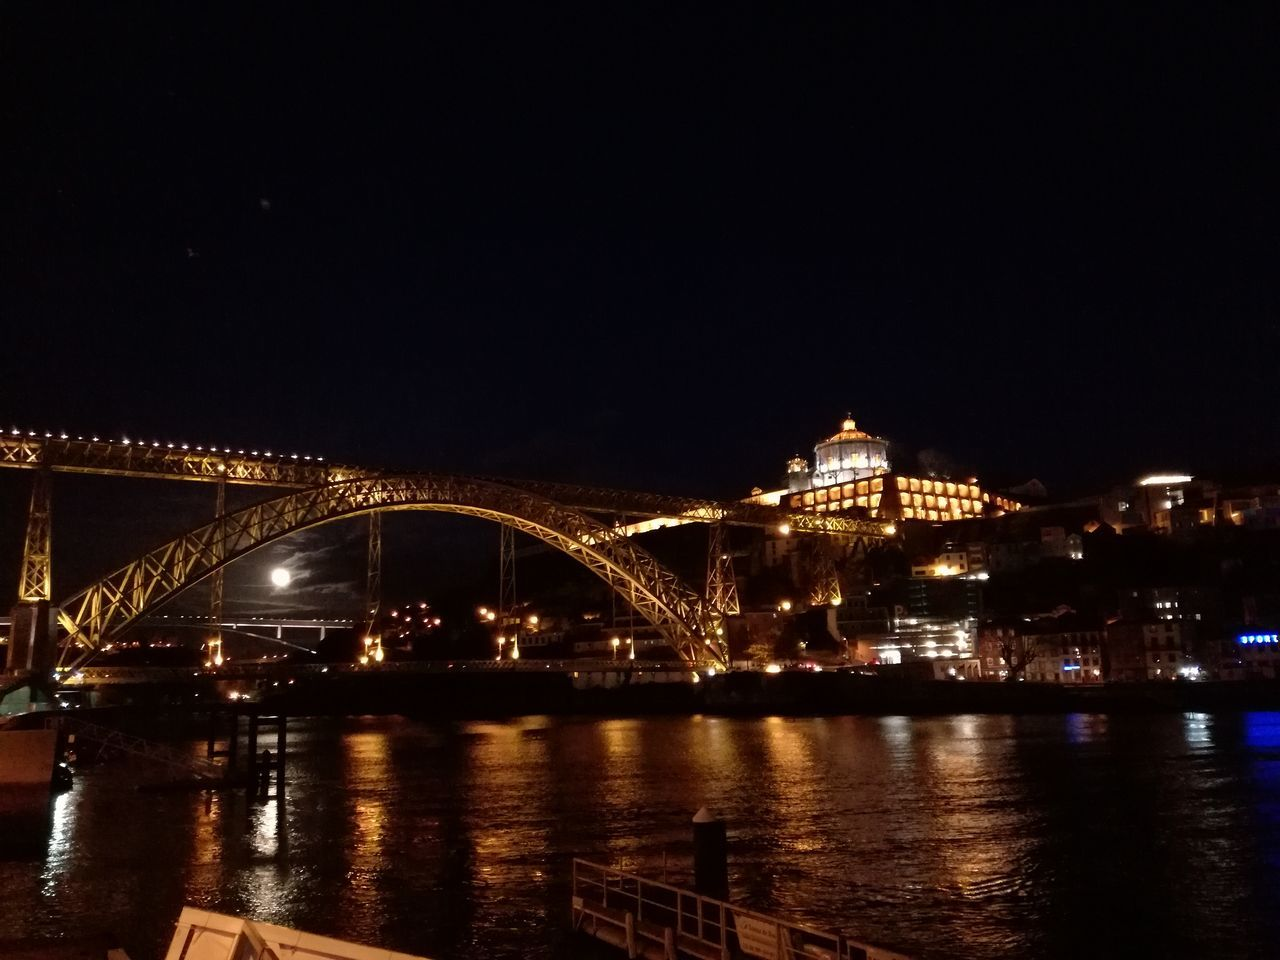 Portugal Porto Night Lights Nofilter Sundaynight 12march2017 D'Luis Brigde